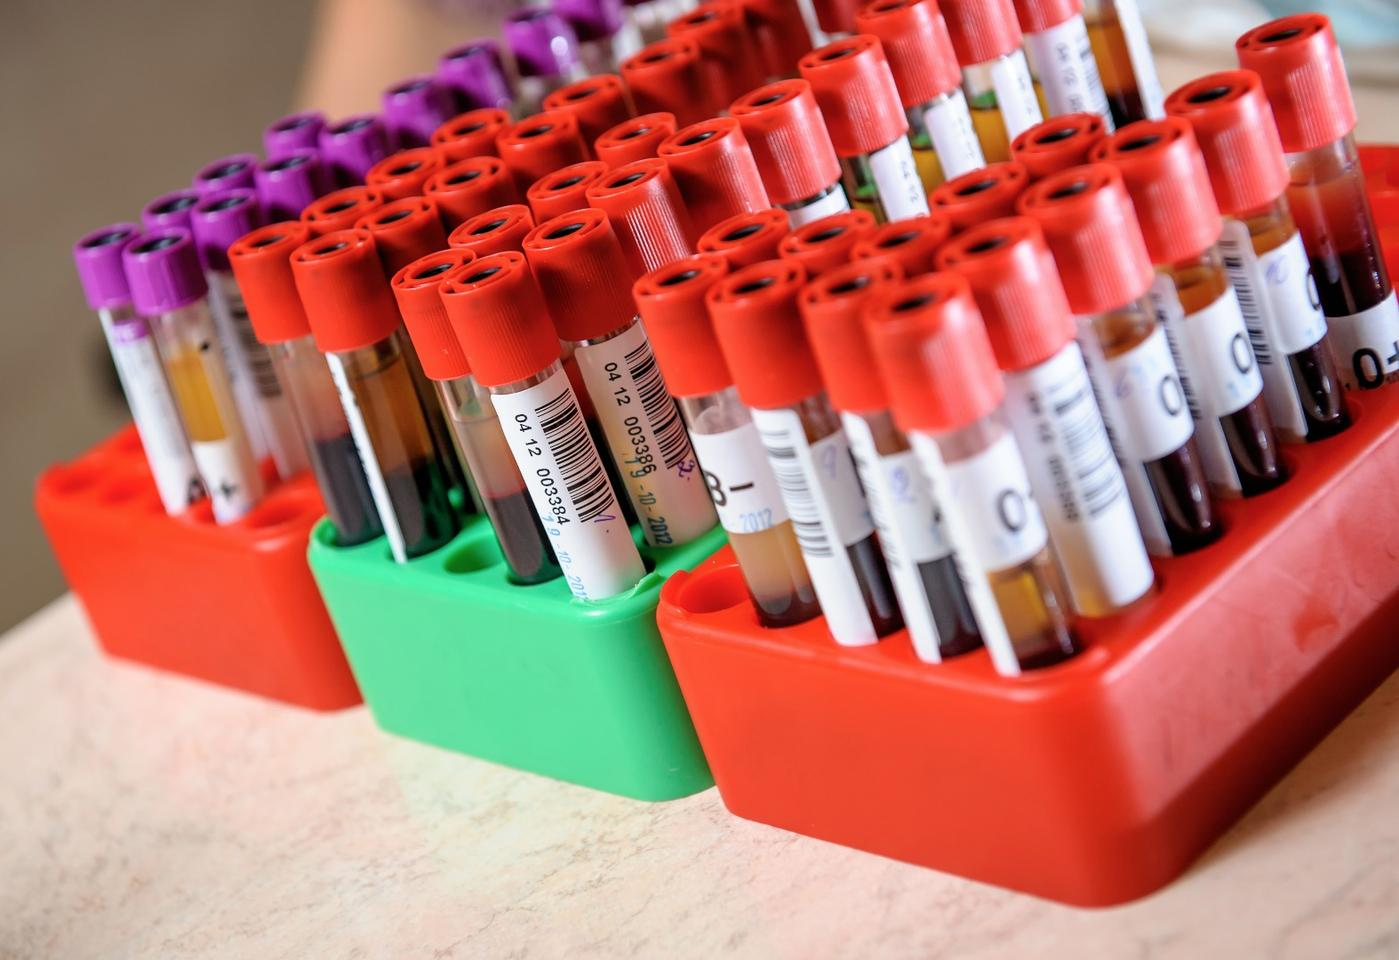 A blood test for Alzheimer's could prove invaluable in detecting the disease early on